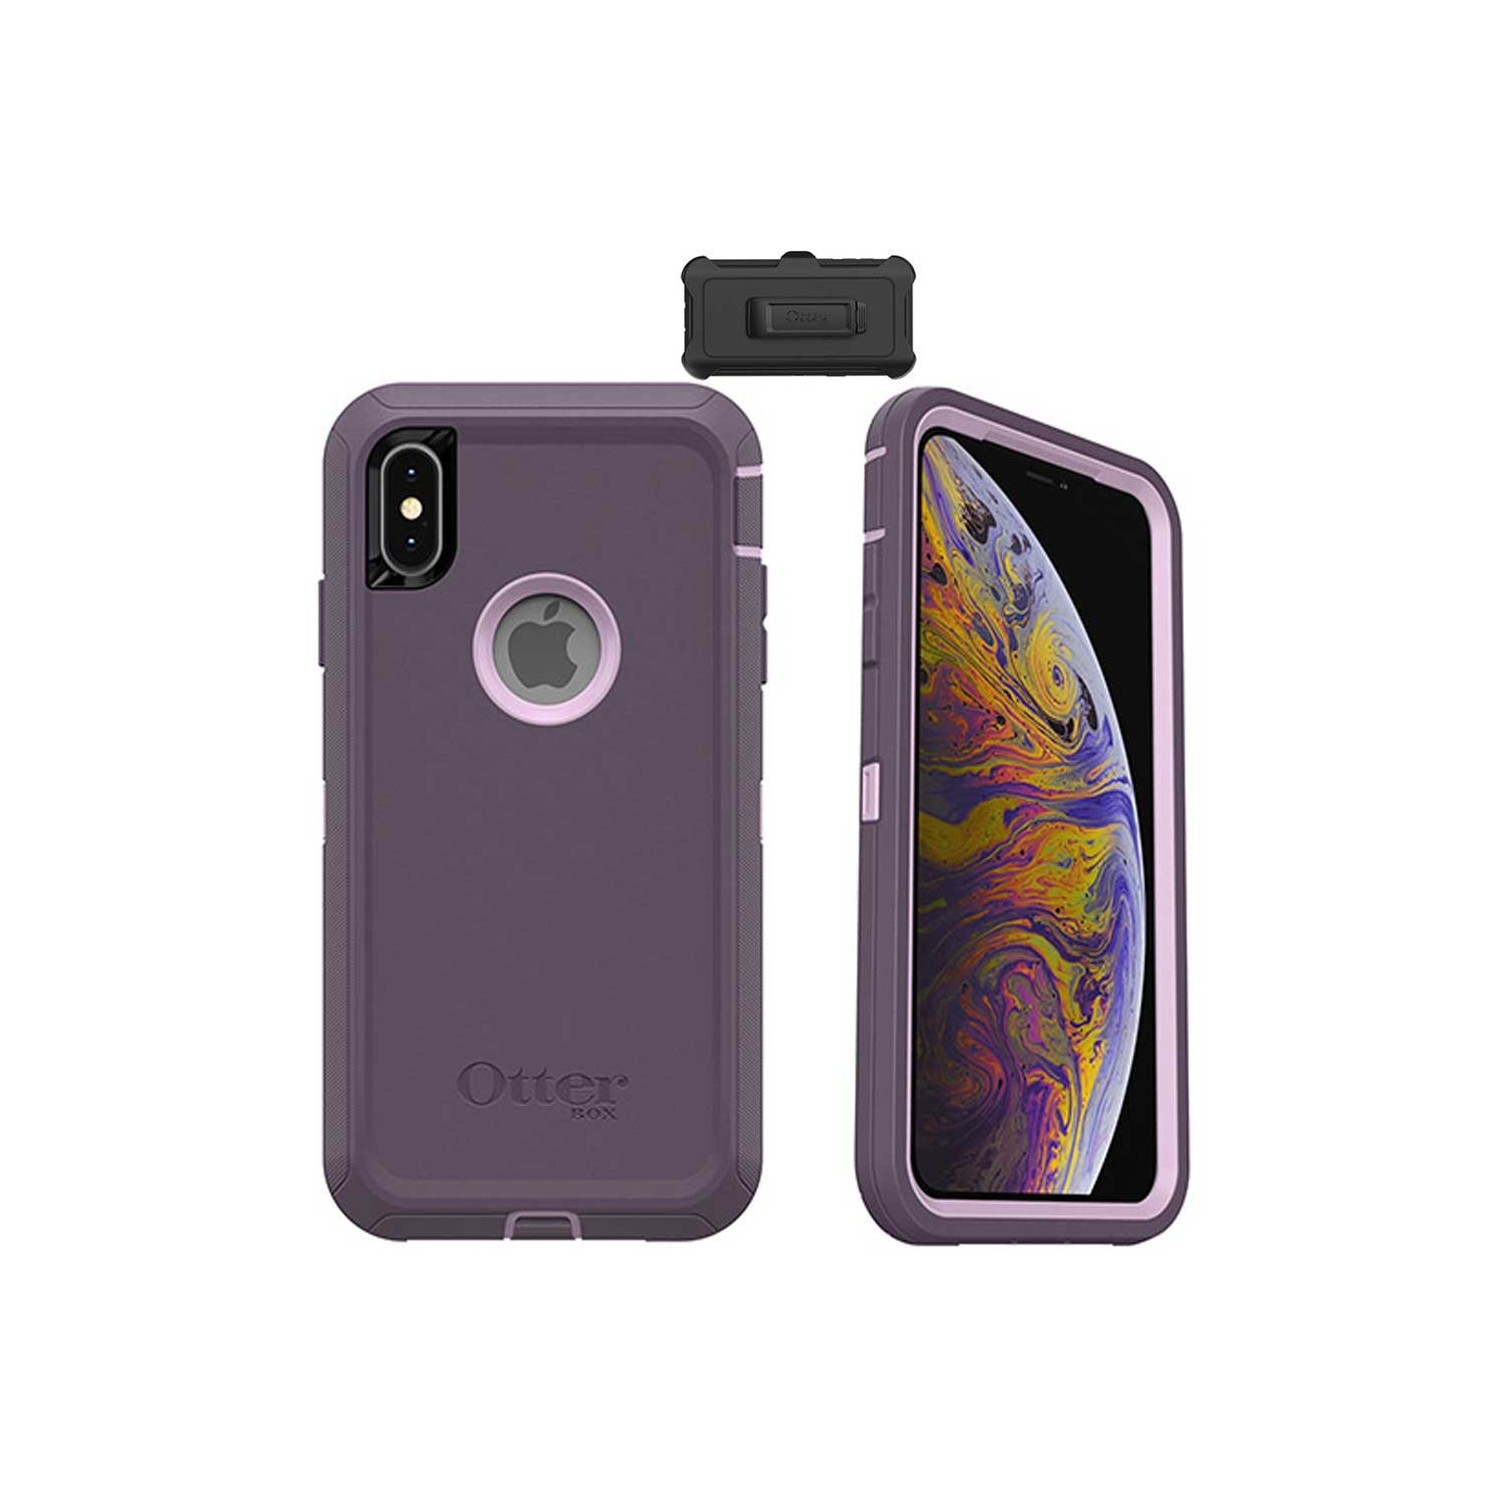 Case - Otterbox Defender for iPhone Xs Purple